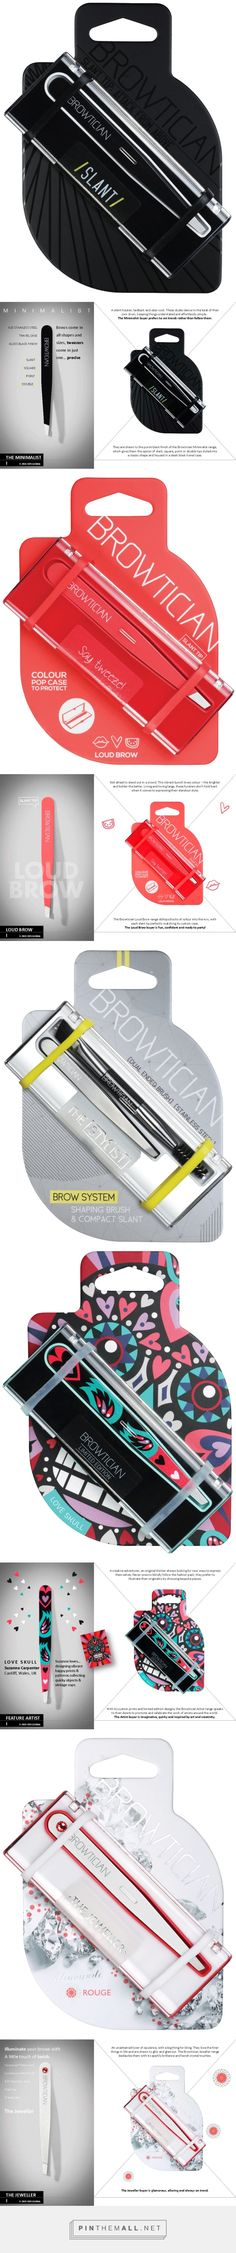 The BROWTICIAN on Behance by Mat Bogust curated by Packaging Diva PD. Awesome tweezer packaging I would definitely buy.